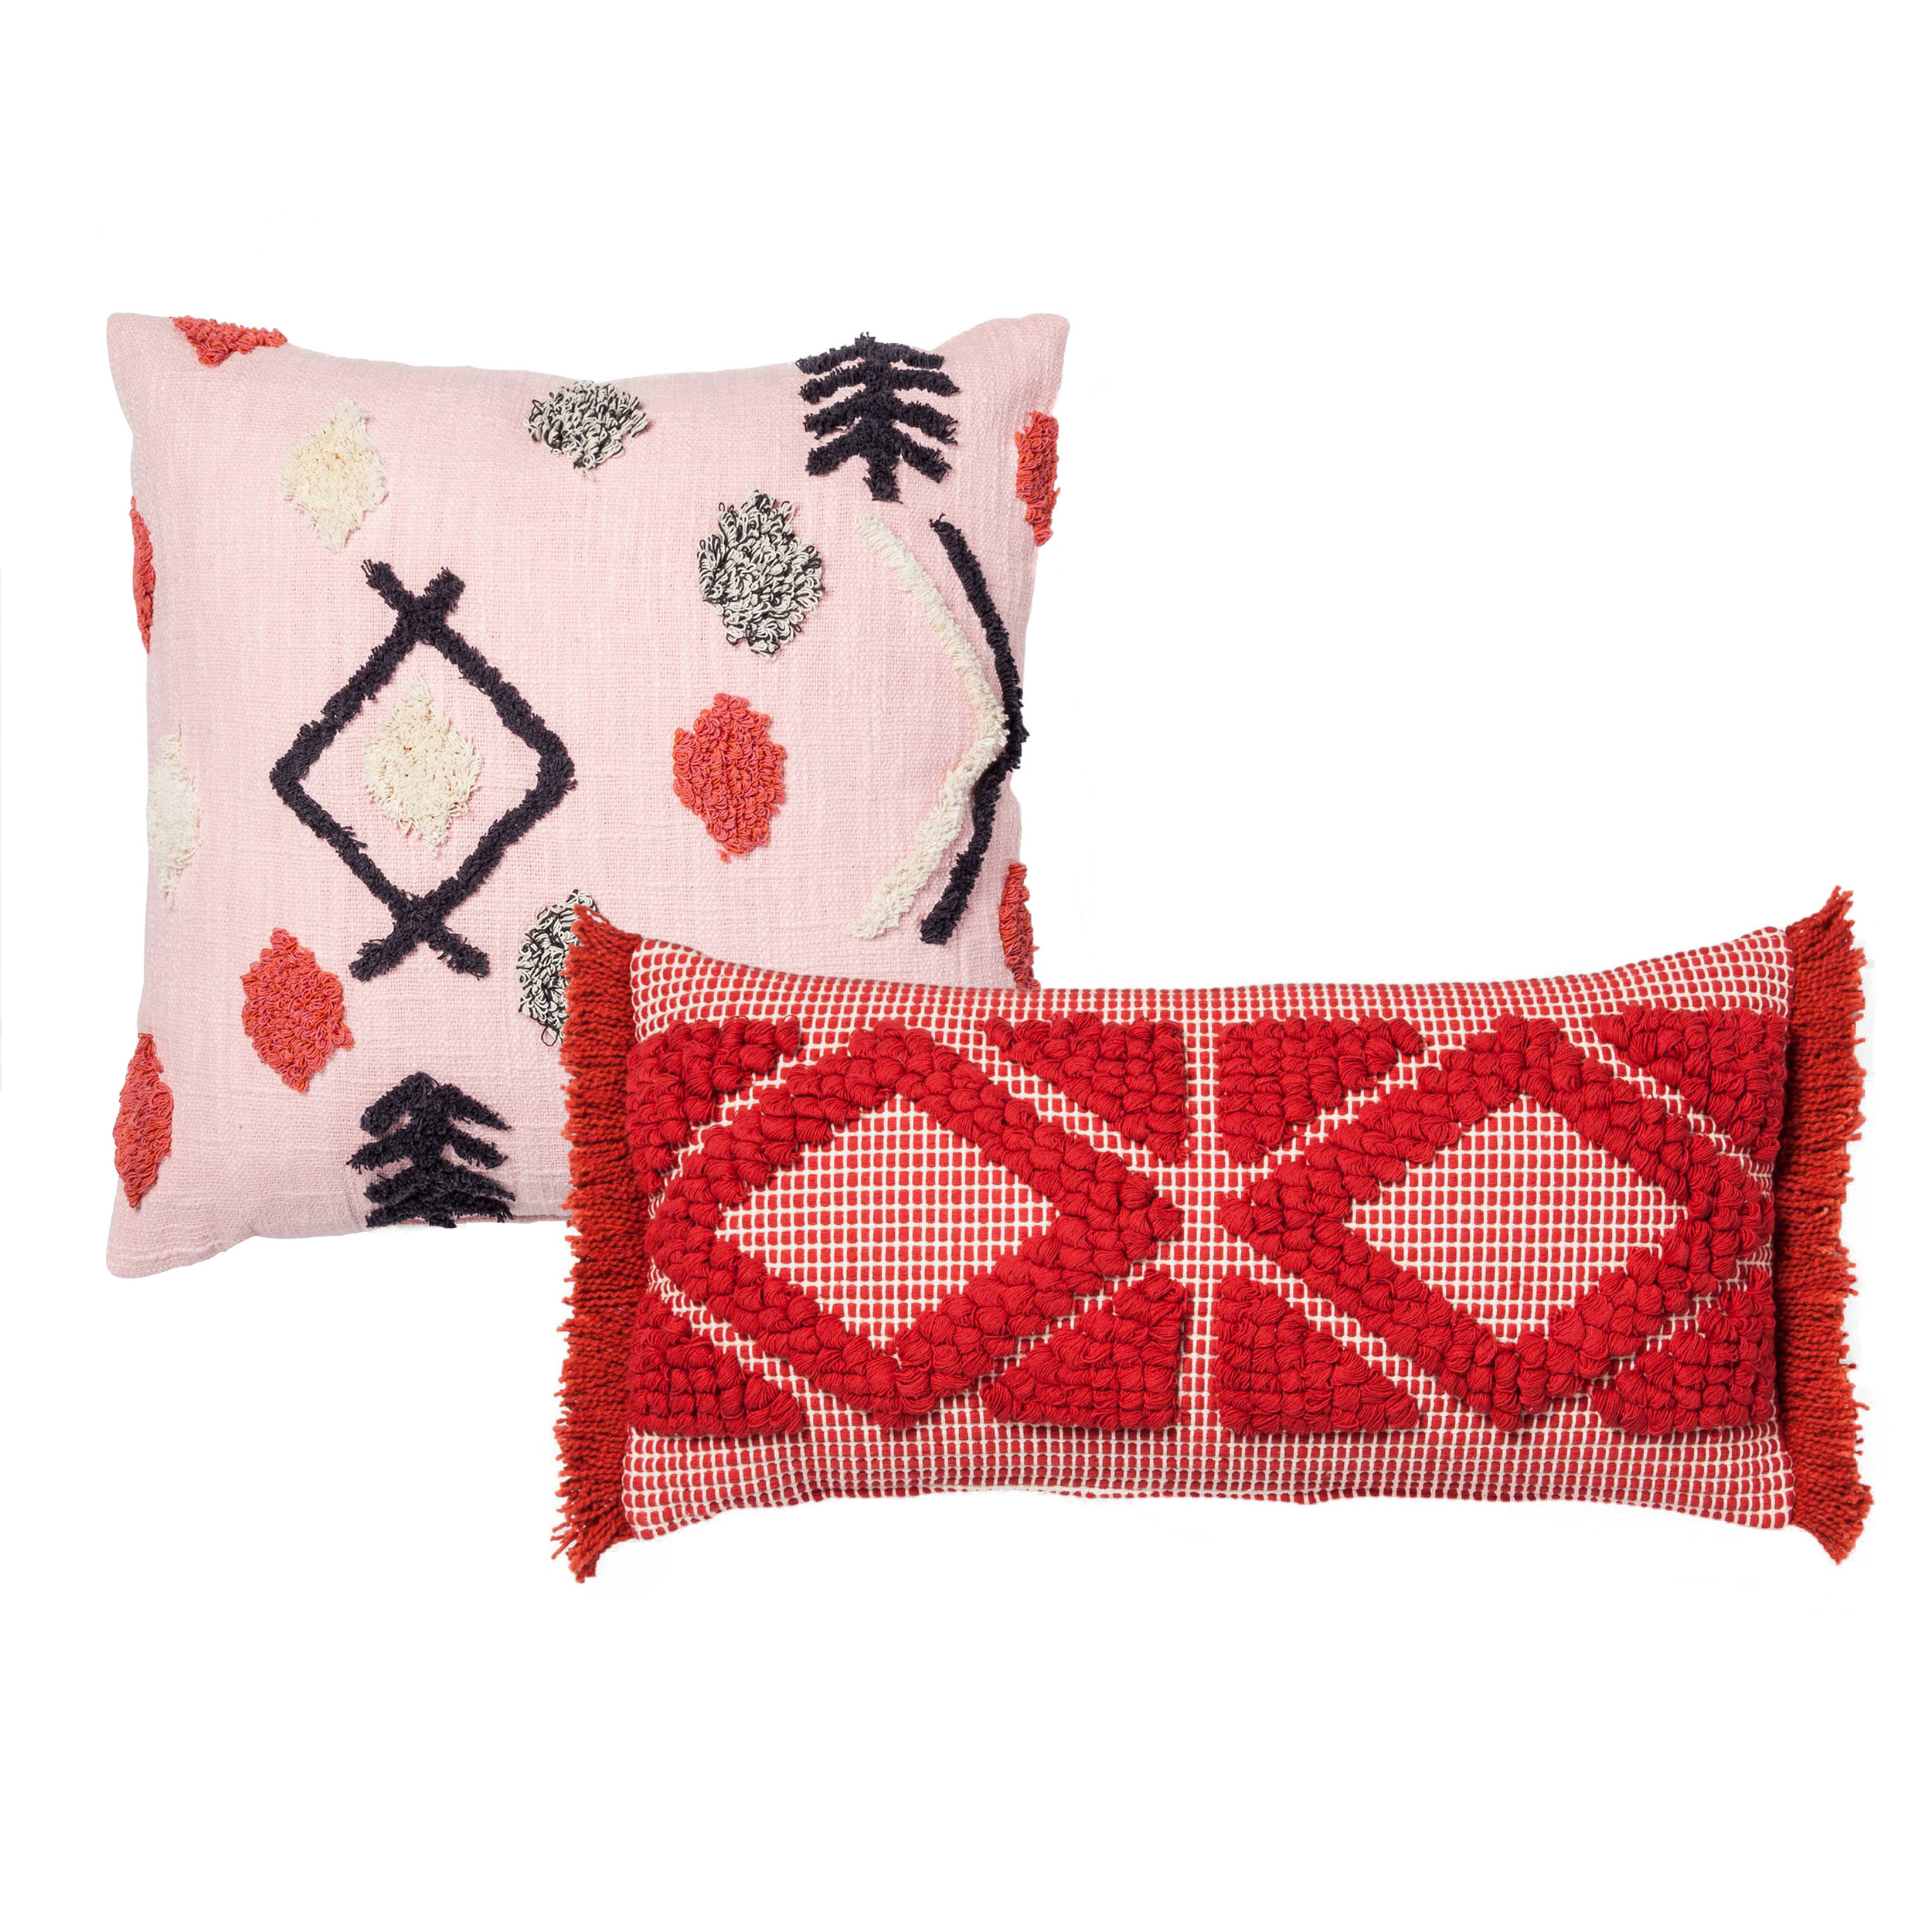 Pink Tufted Throw Pillow, $19.99Orange Diamond Skinny Lumbar Throw Pillow, $19.99 -